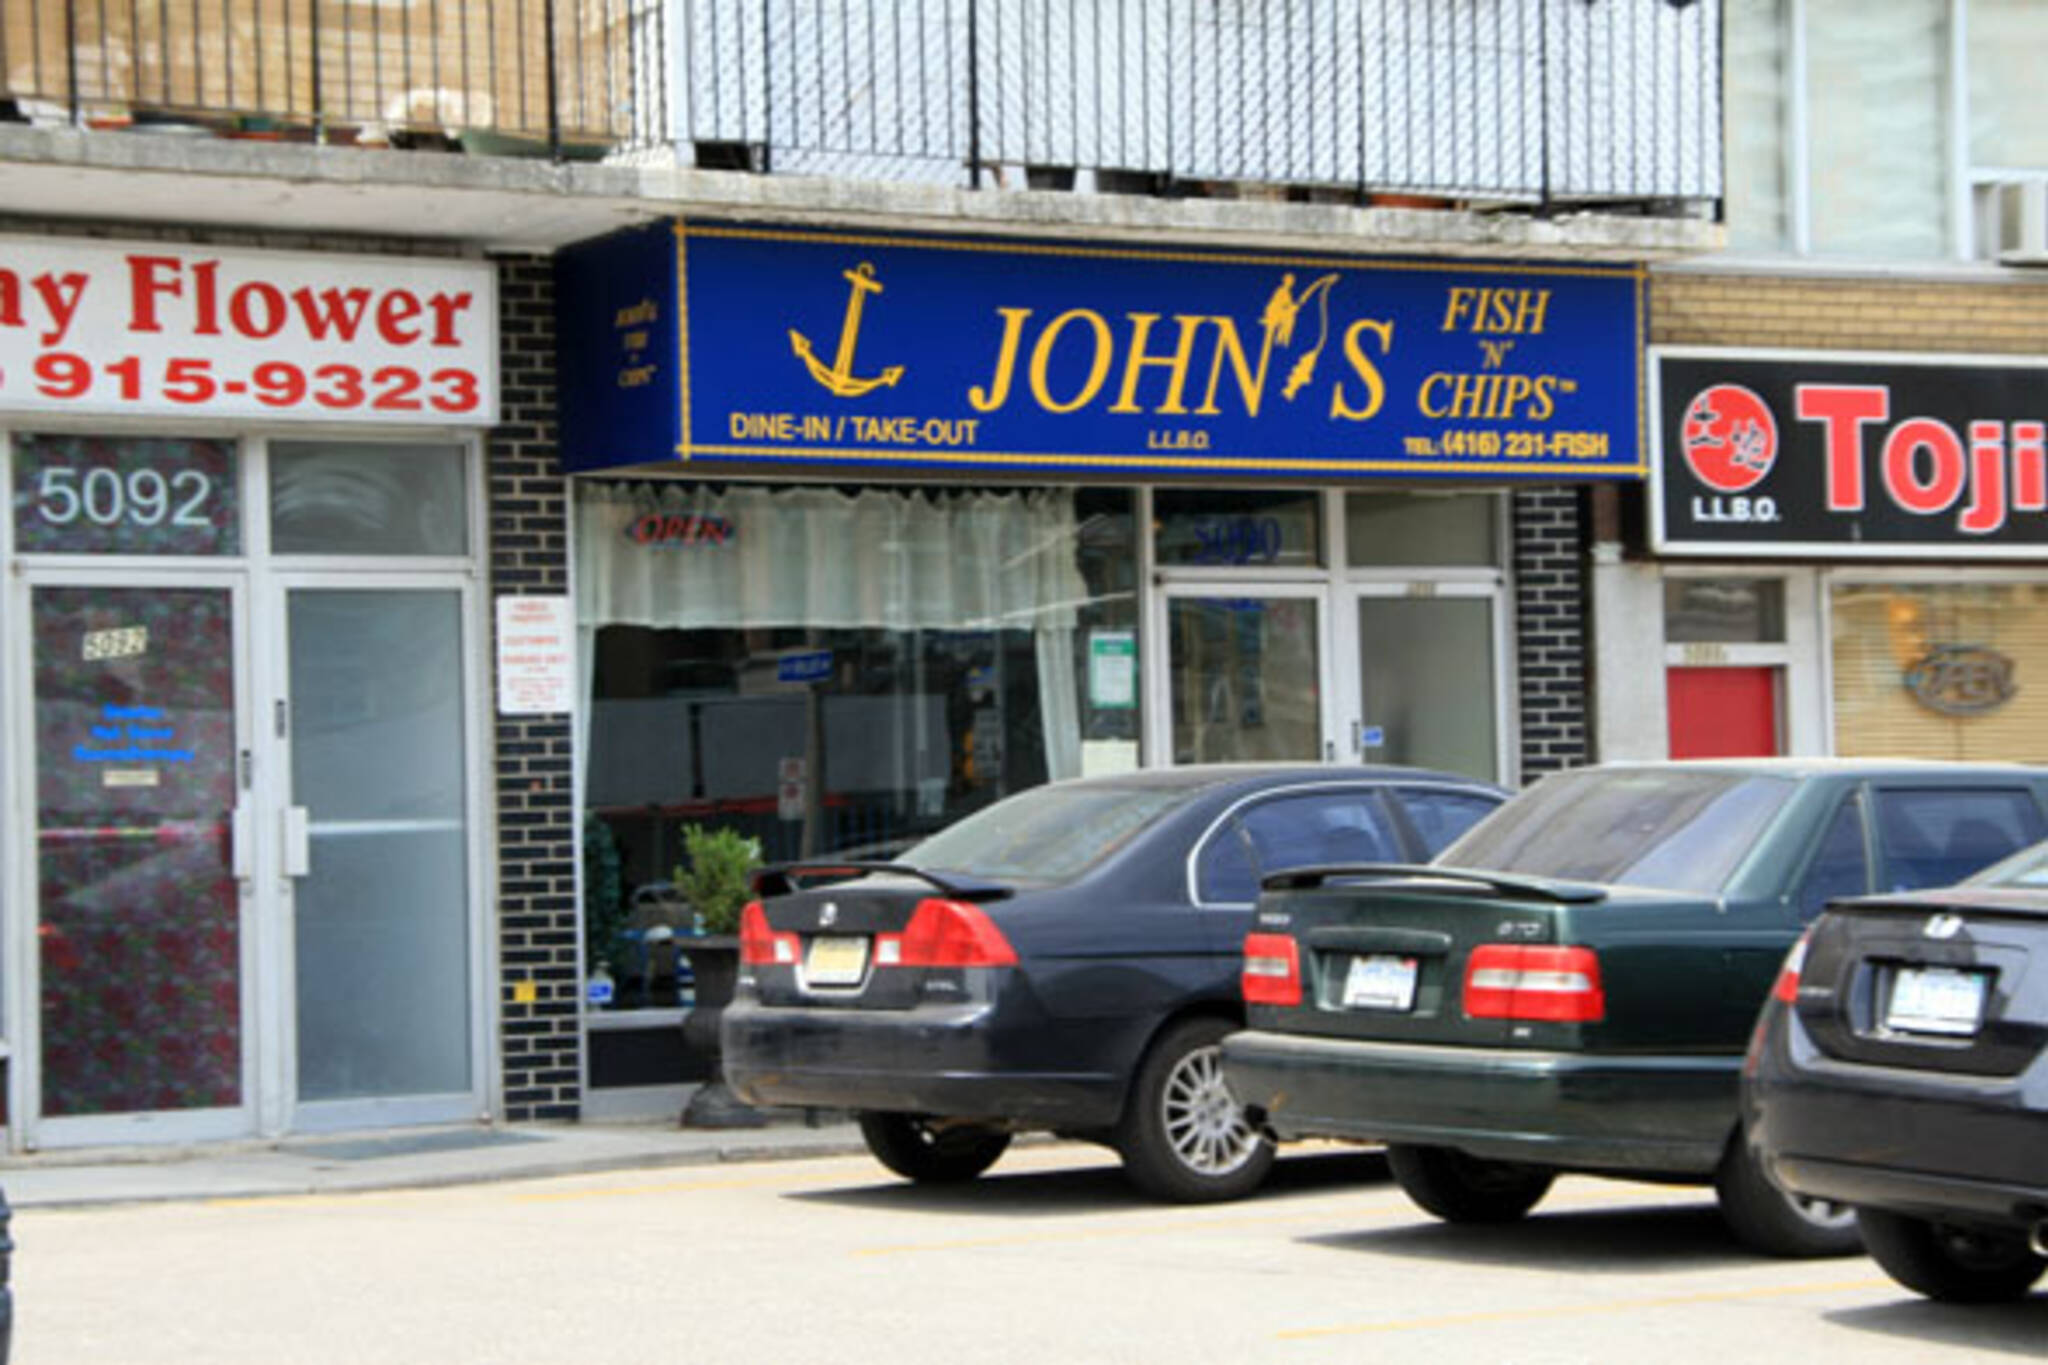 Johns Fish & Chips